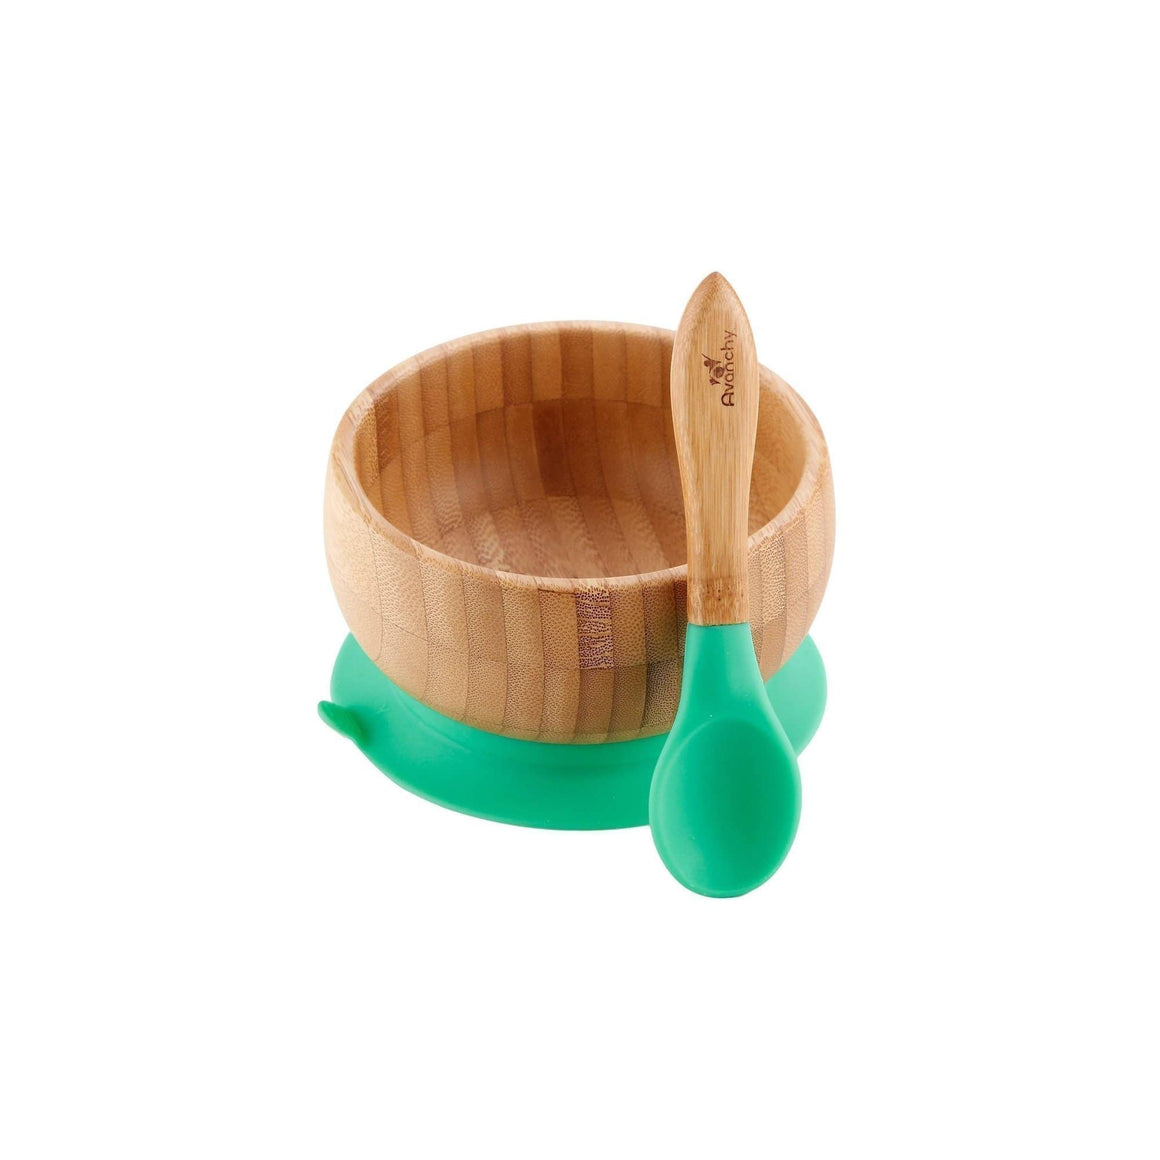 Avanchy Bamboo Stay Put Suction Baby Bowl + Spoon - Green (兒童有機竹碗套裝-綠色)